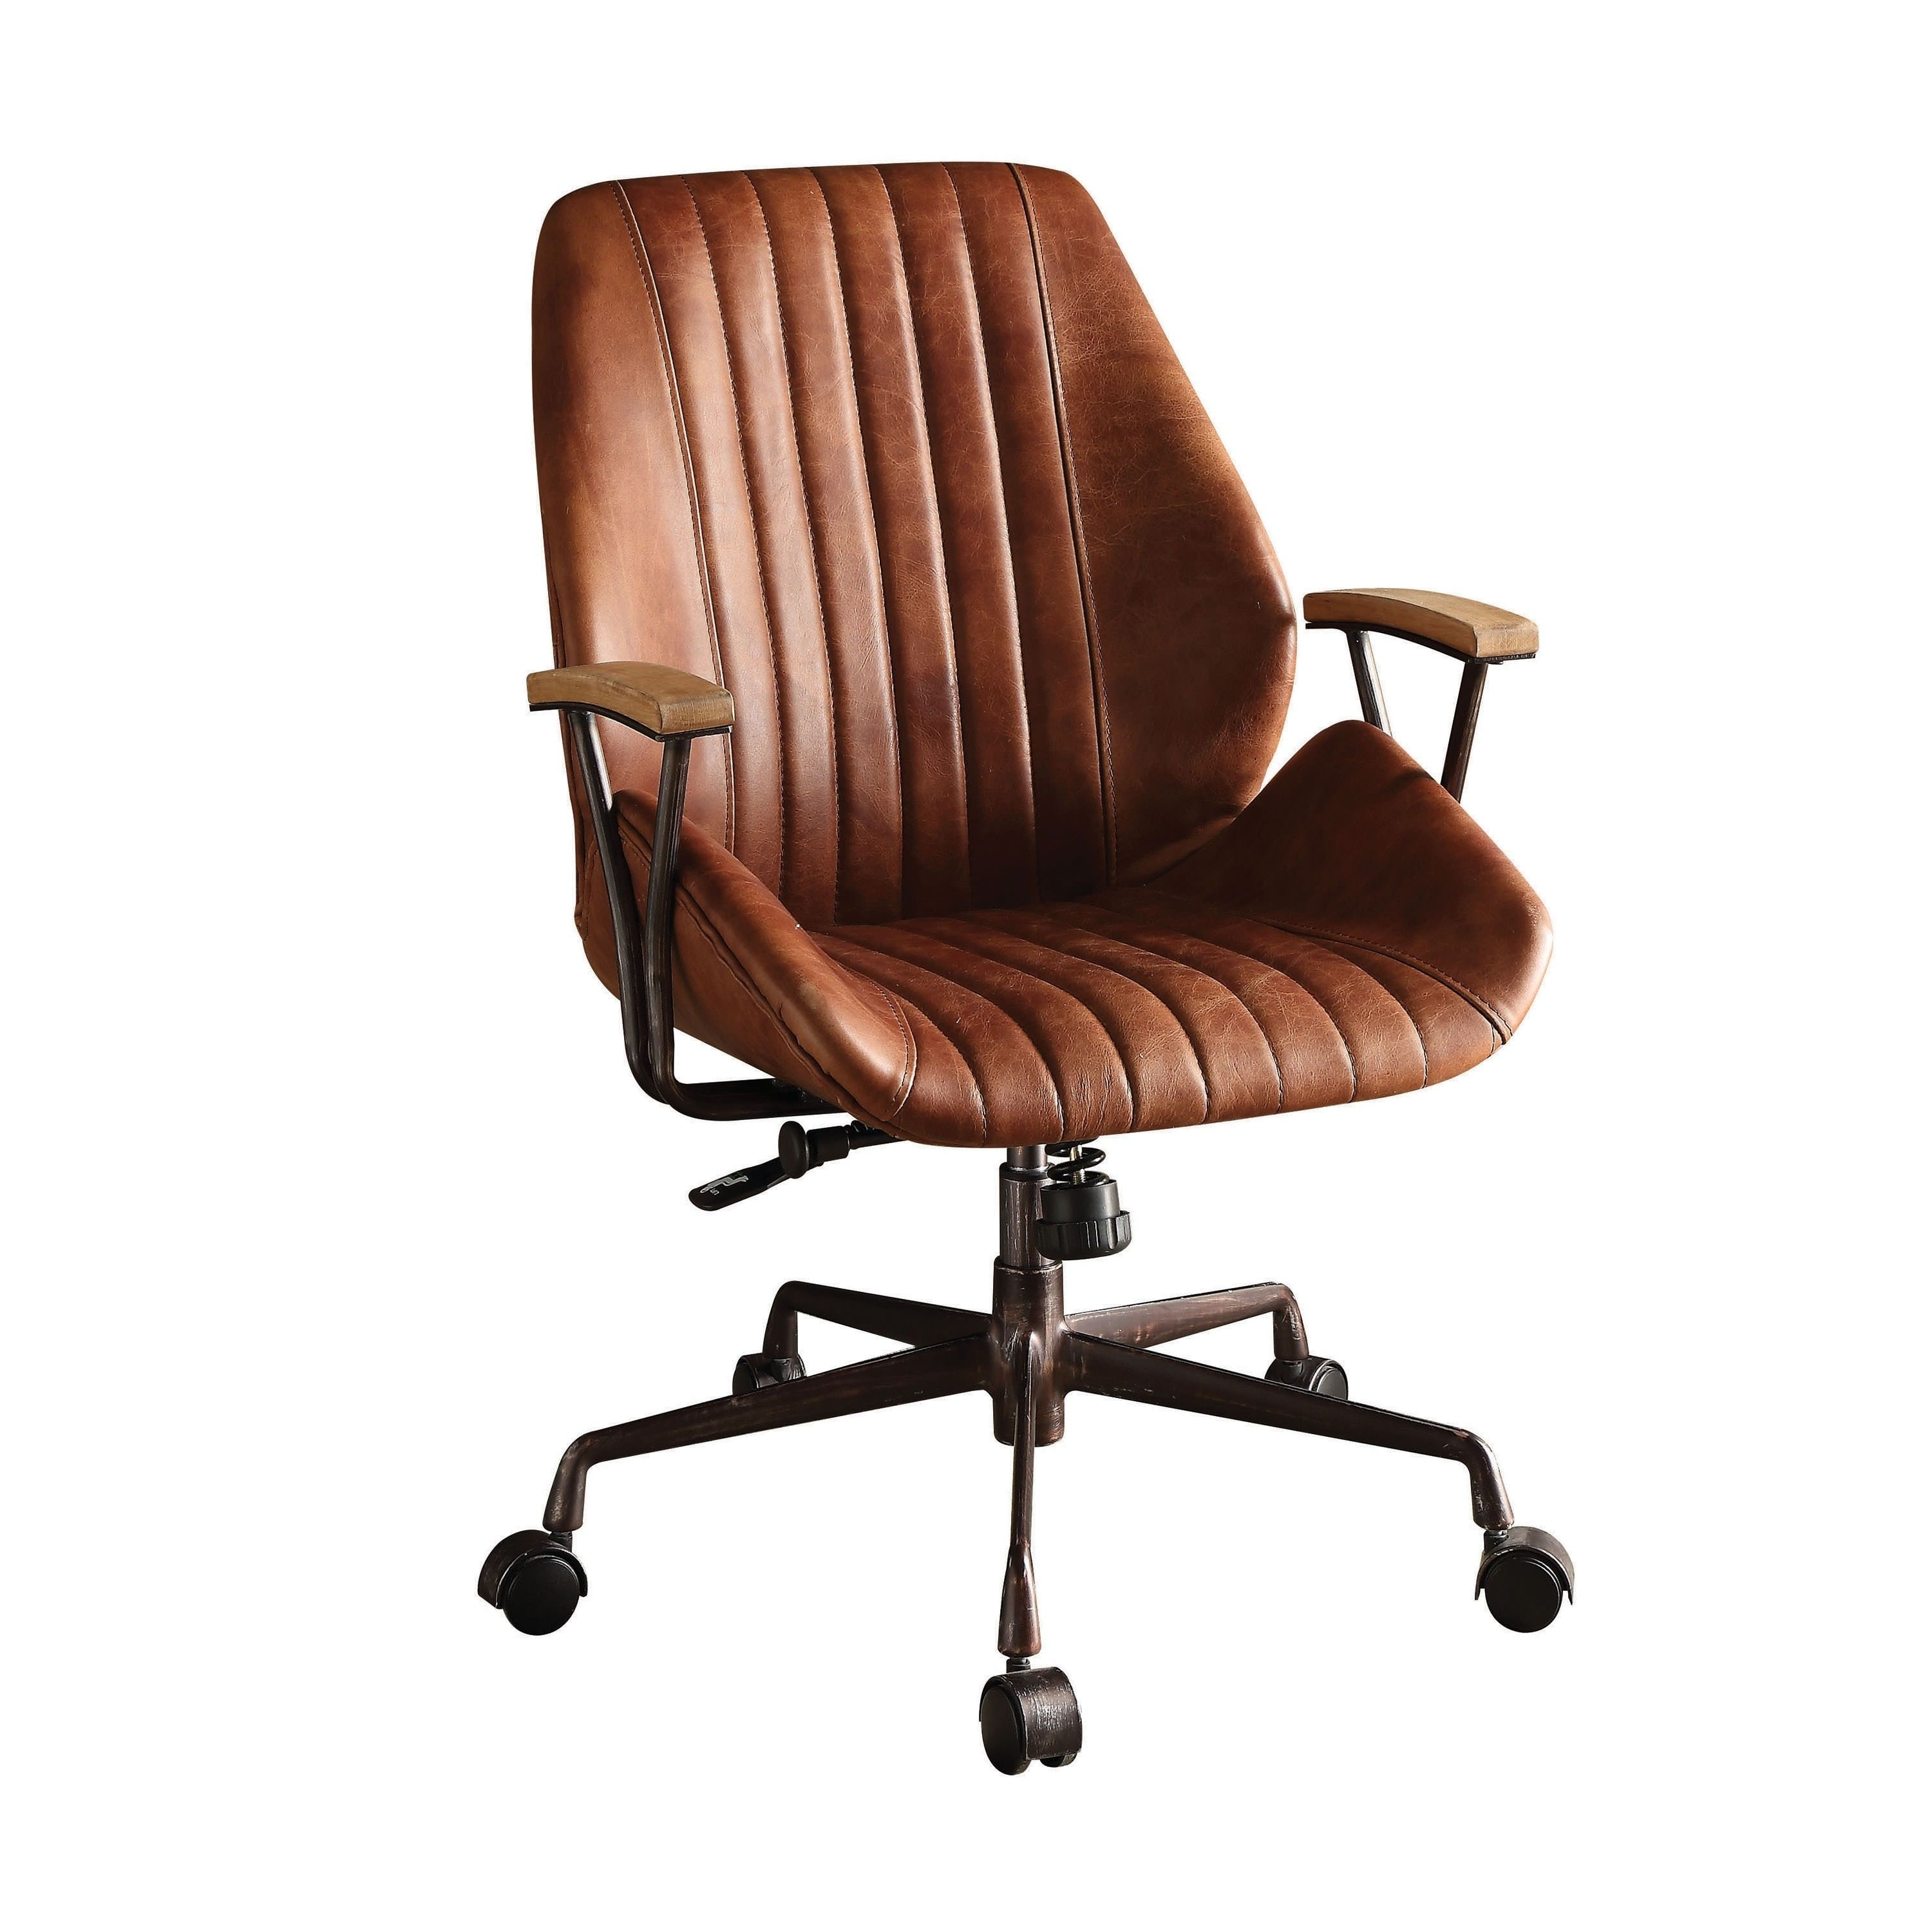 Executive Office Chairs Traditional Office Chairs Office Chair